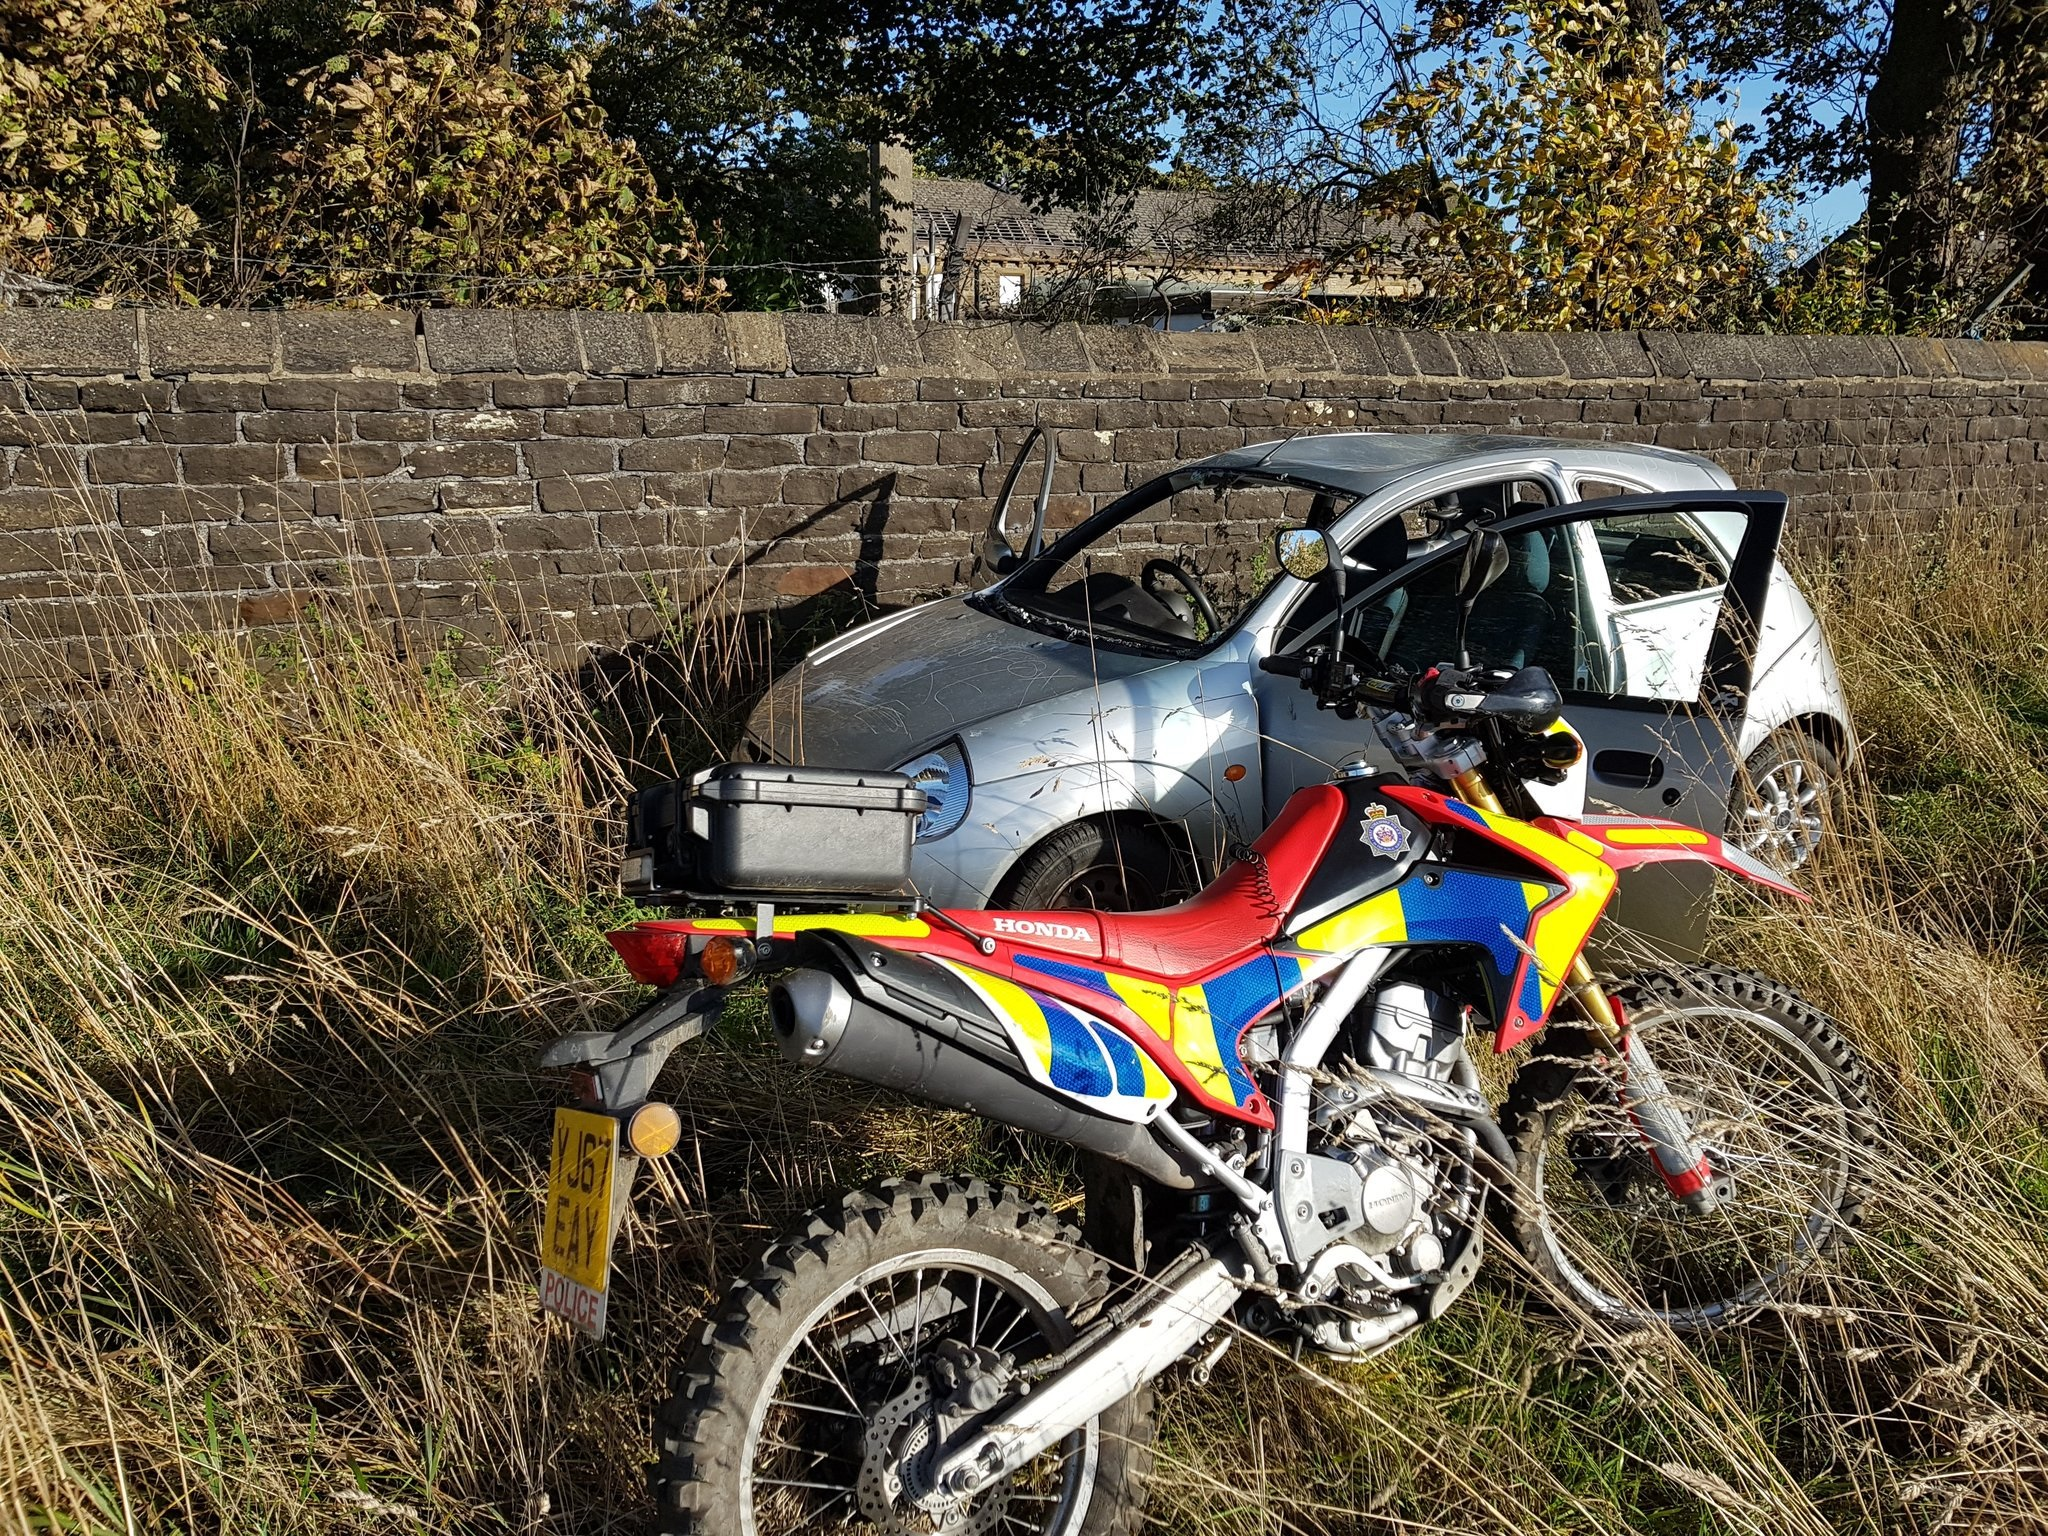 A silver car was seized in the Bradford east area yesterday.